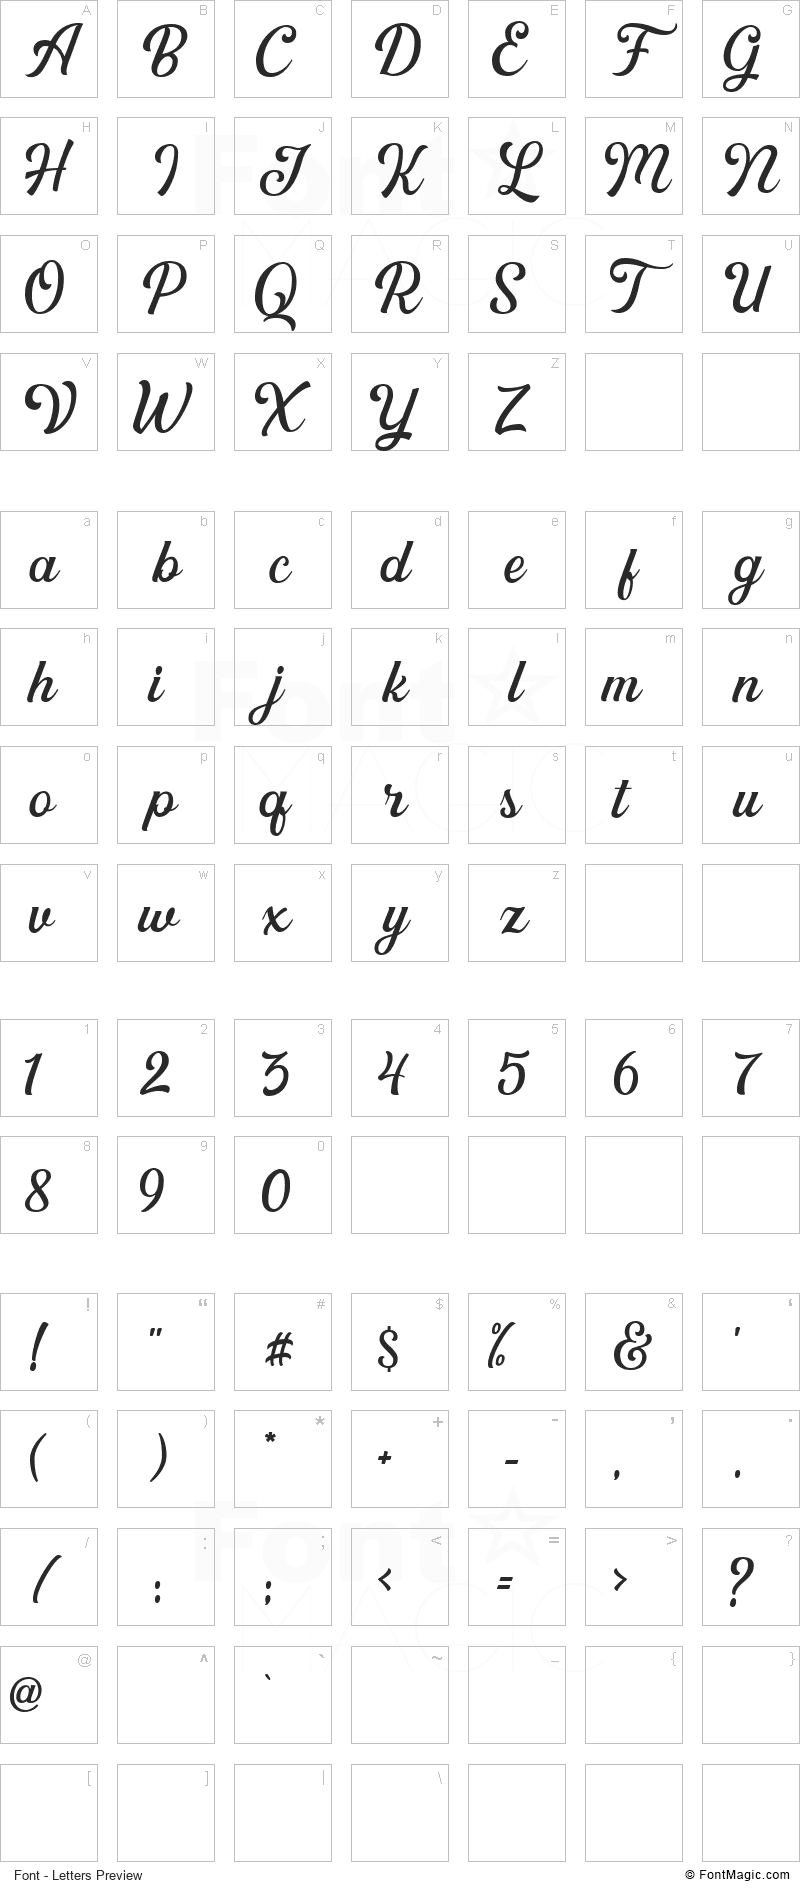 Greatly Font - All Latters Preview Chart